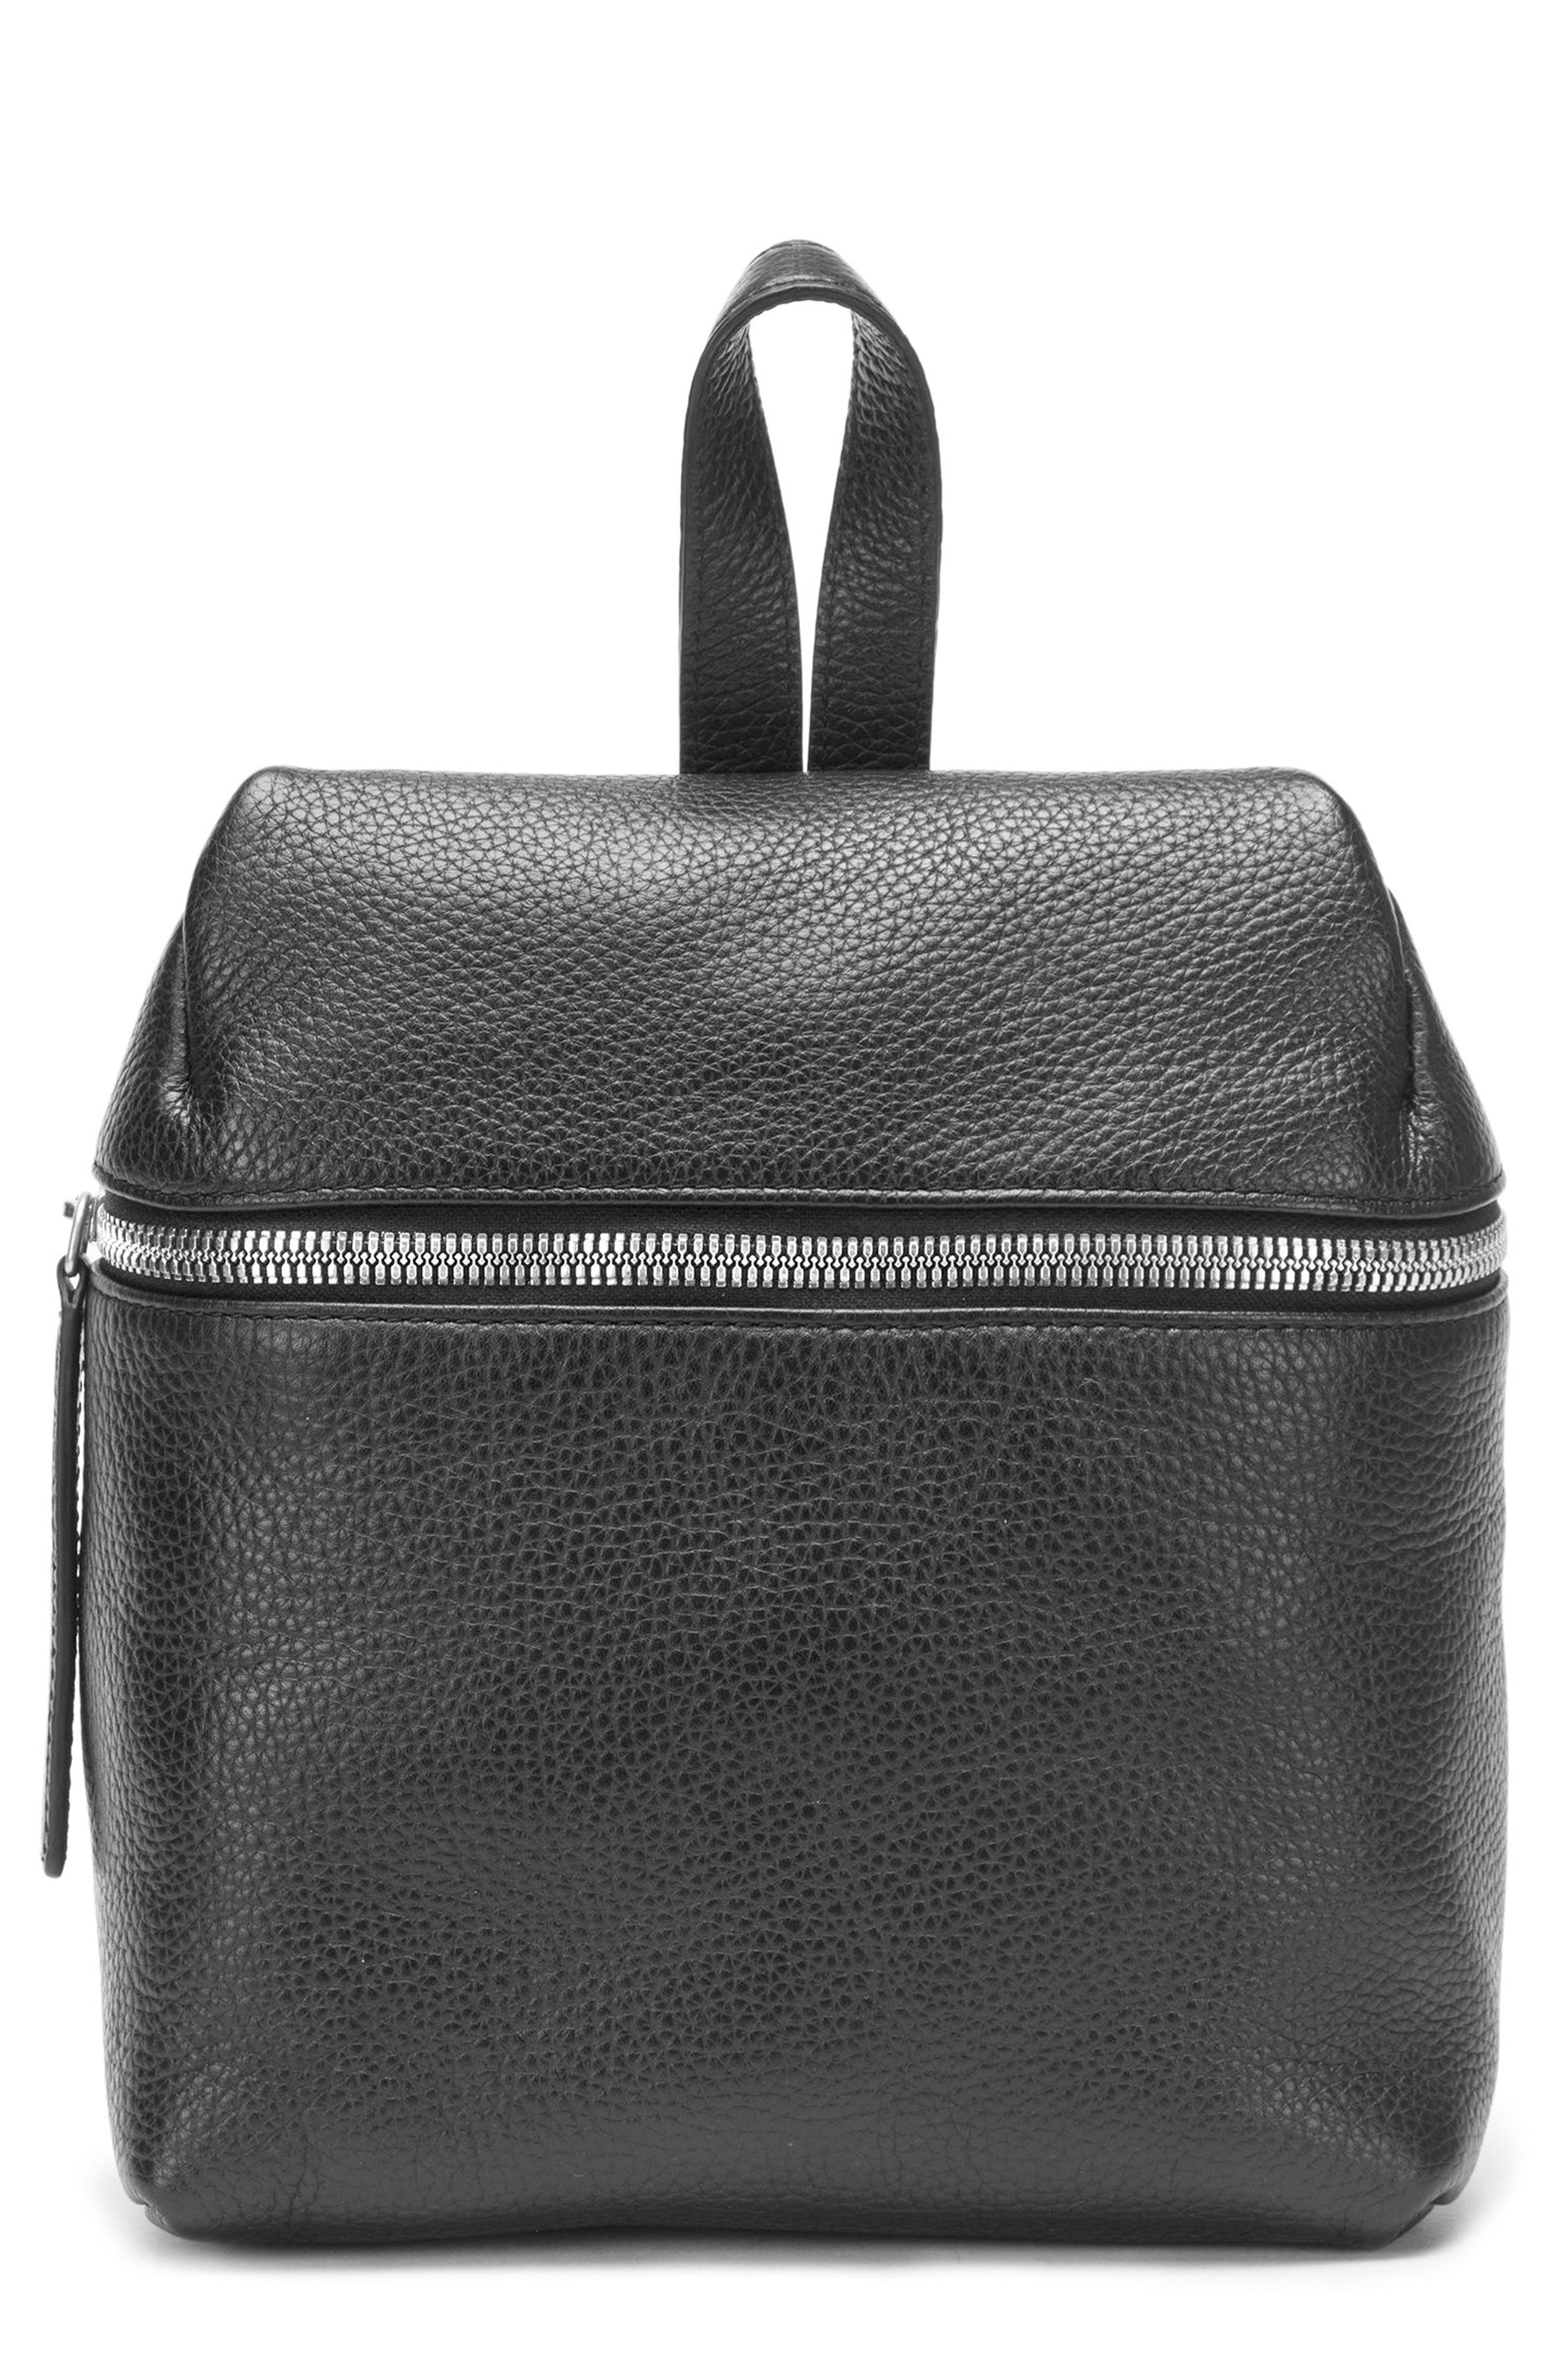 Main Image - KARA Small Pebbled Leather Backpack